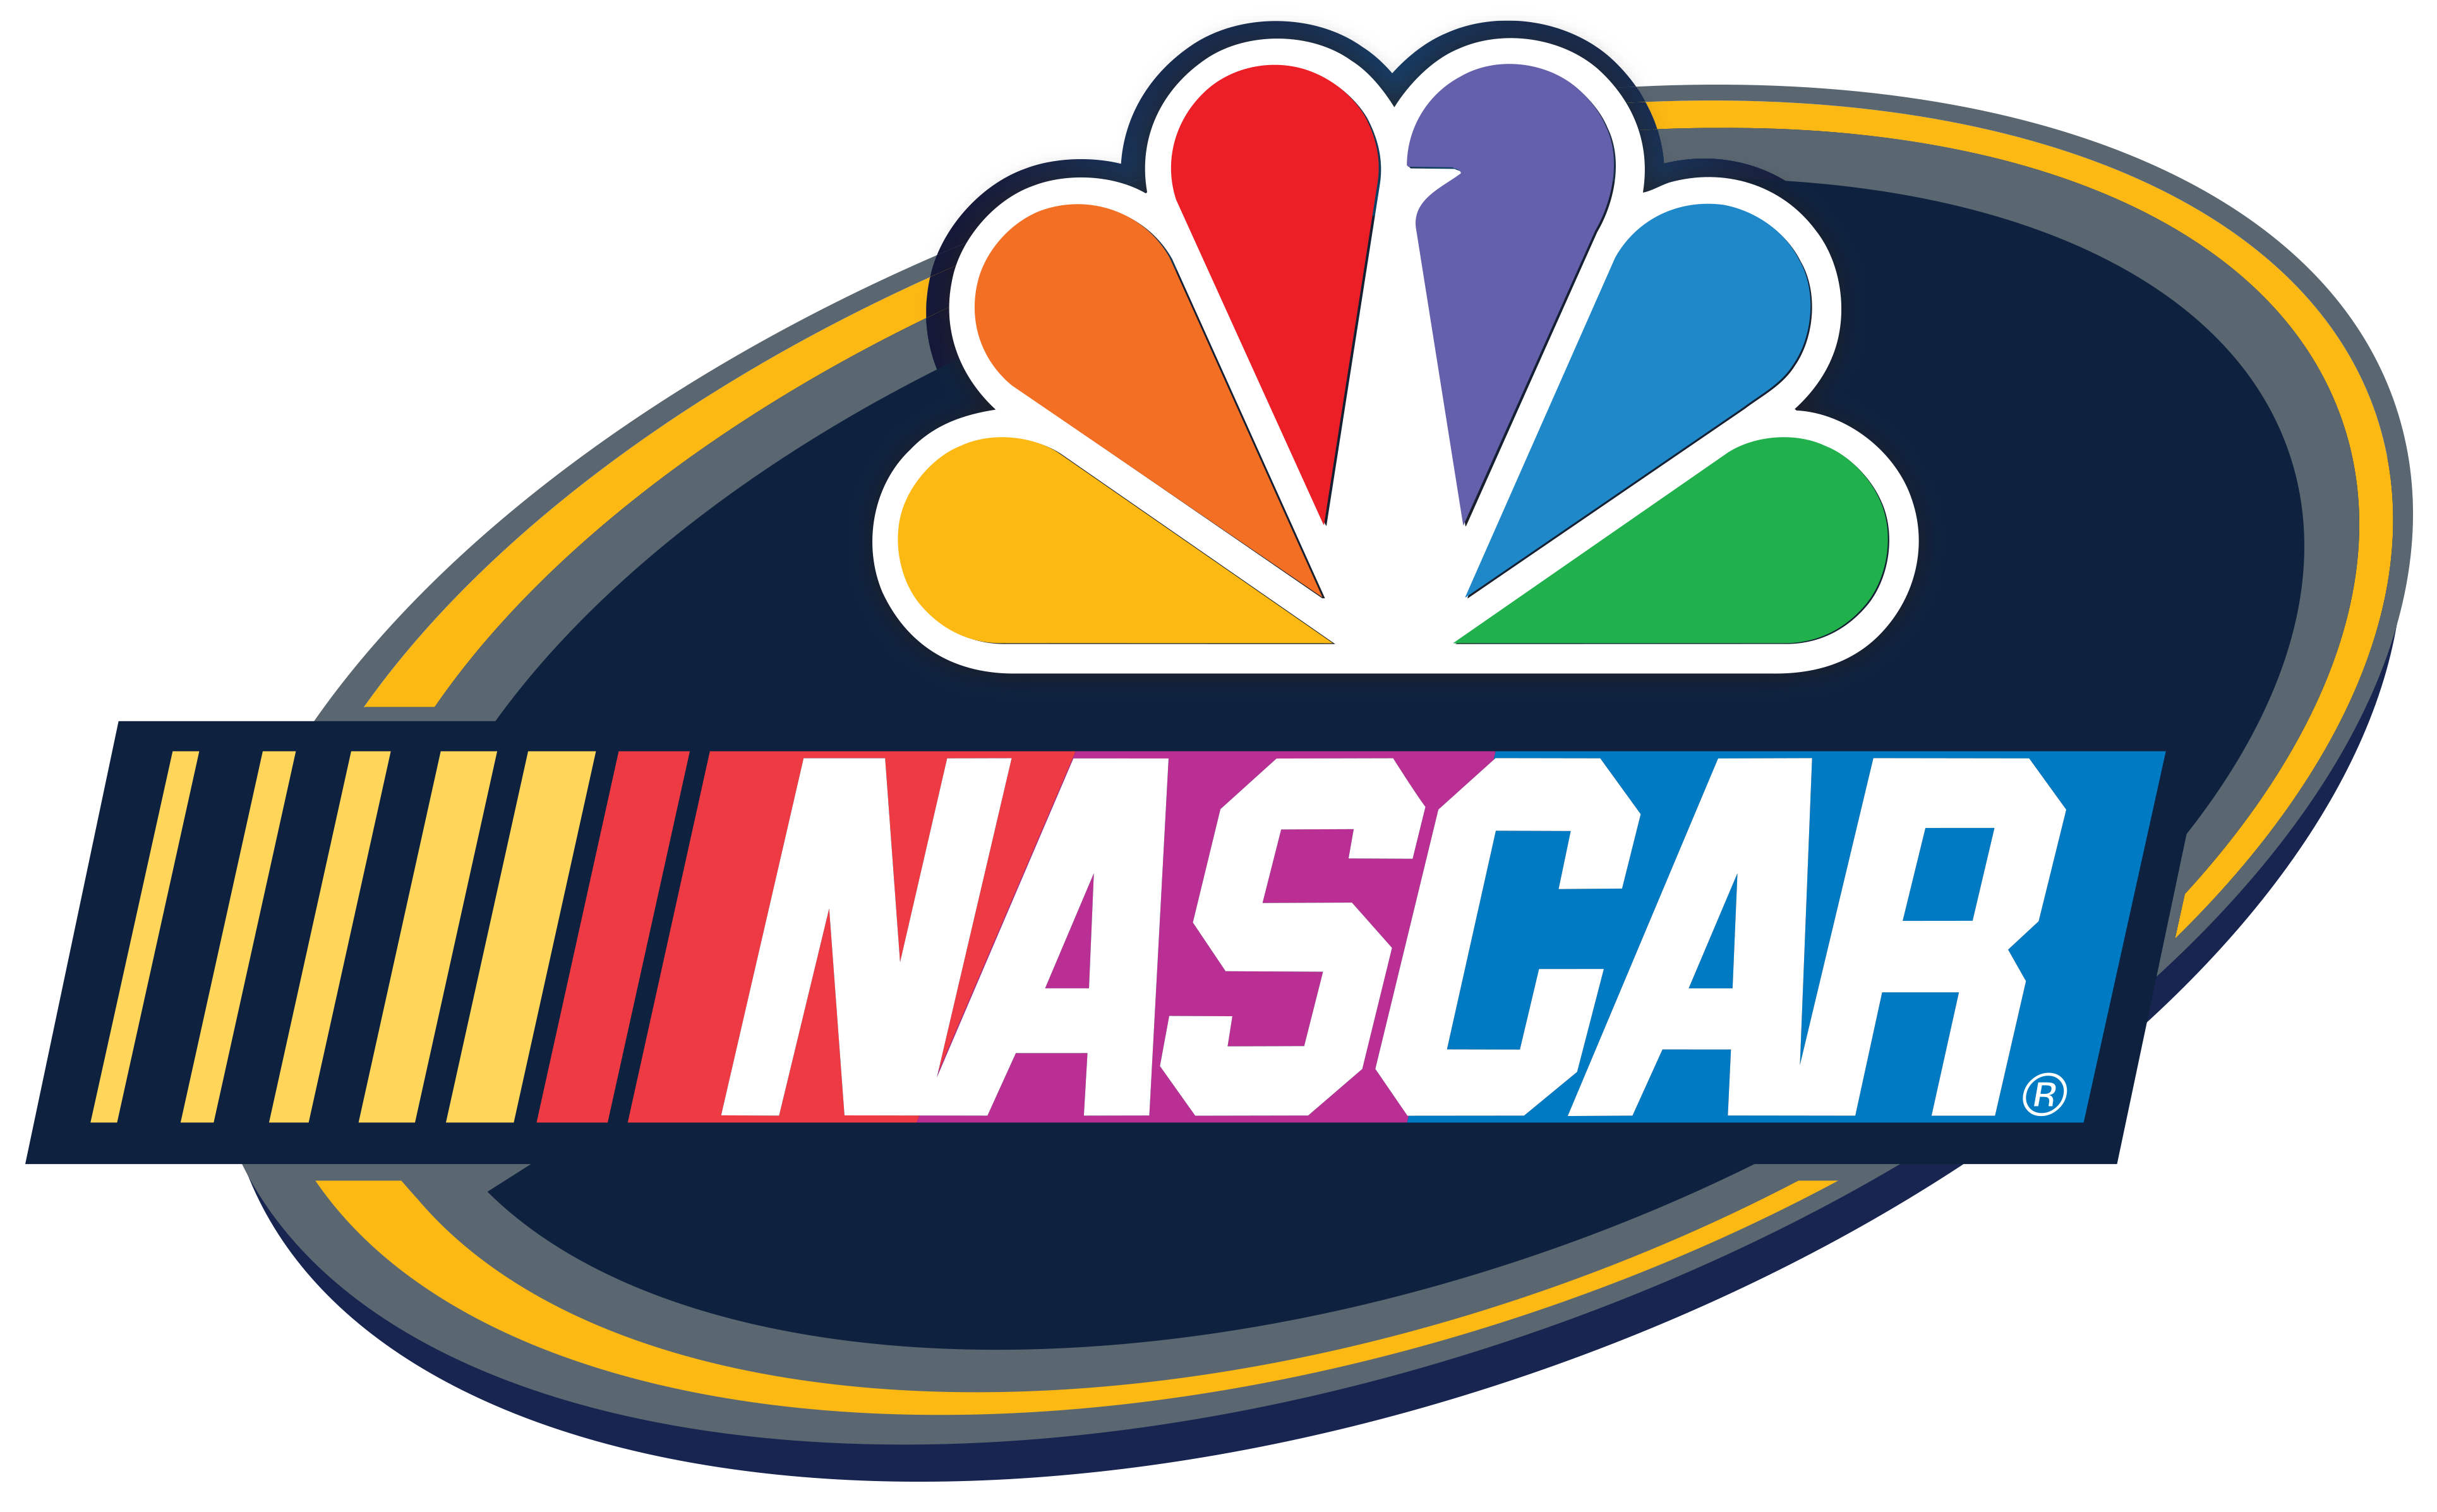 Nbcsn logo clipart png black and white library During Olympics, USA Network will air NASCAR races png black and white library